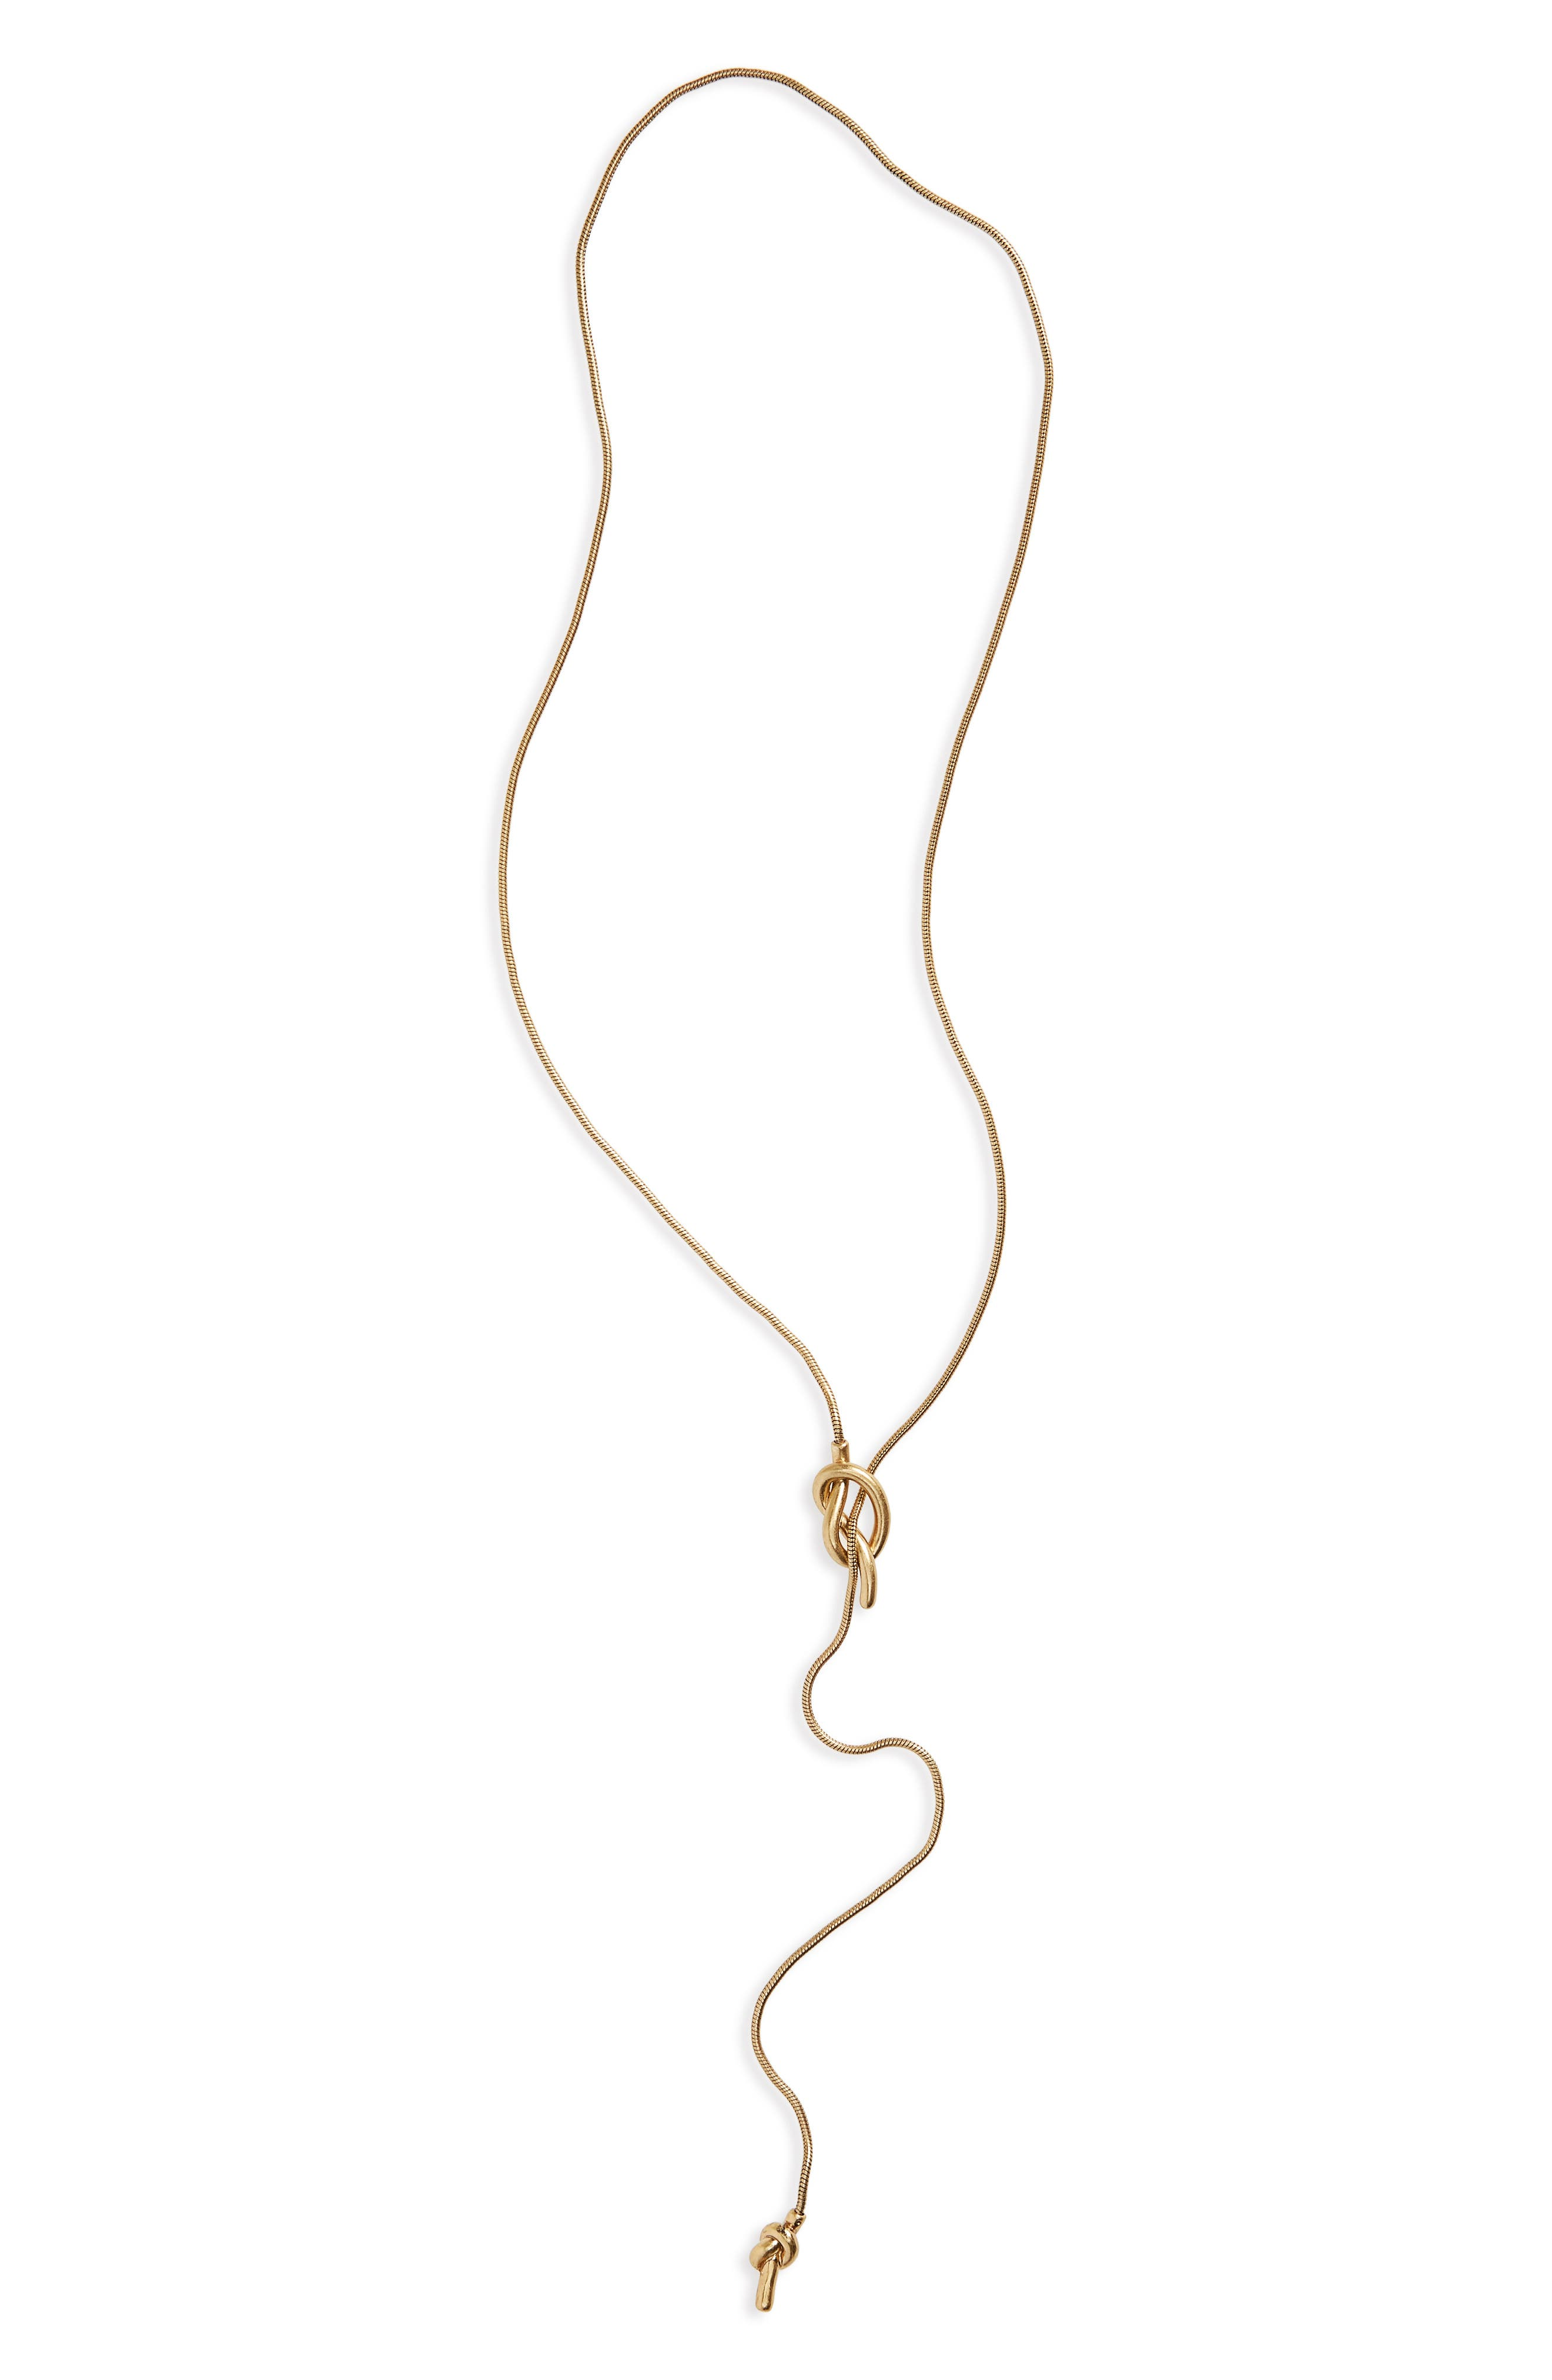 MADEWELL 'Knotshine' Necklace, Main, color, GOLD OX